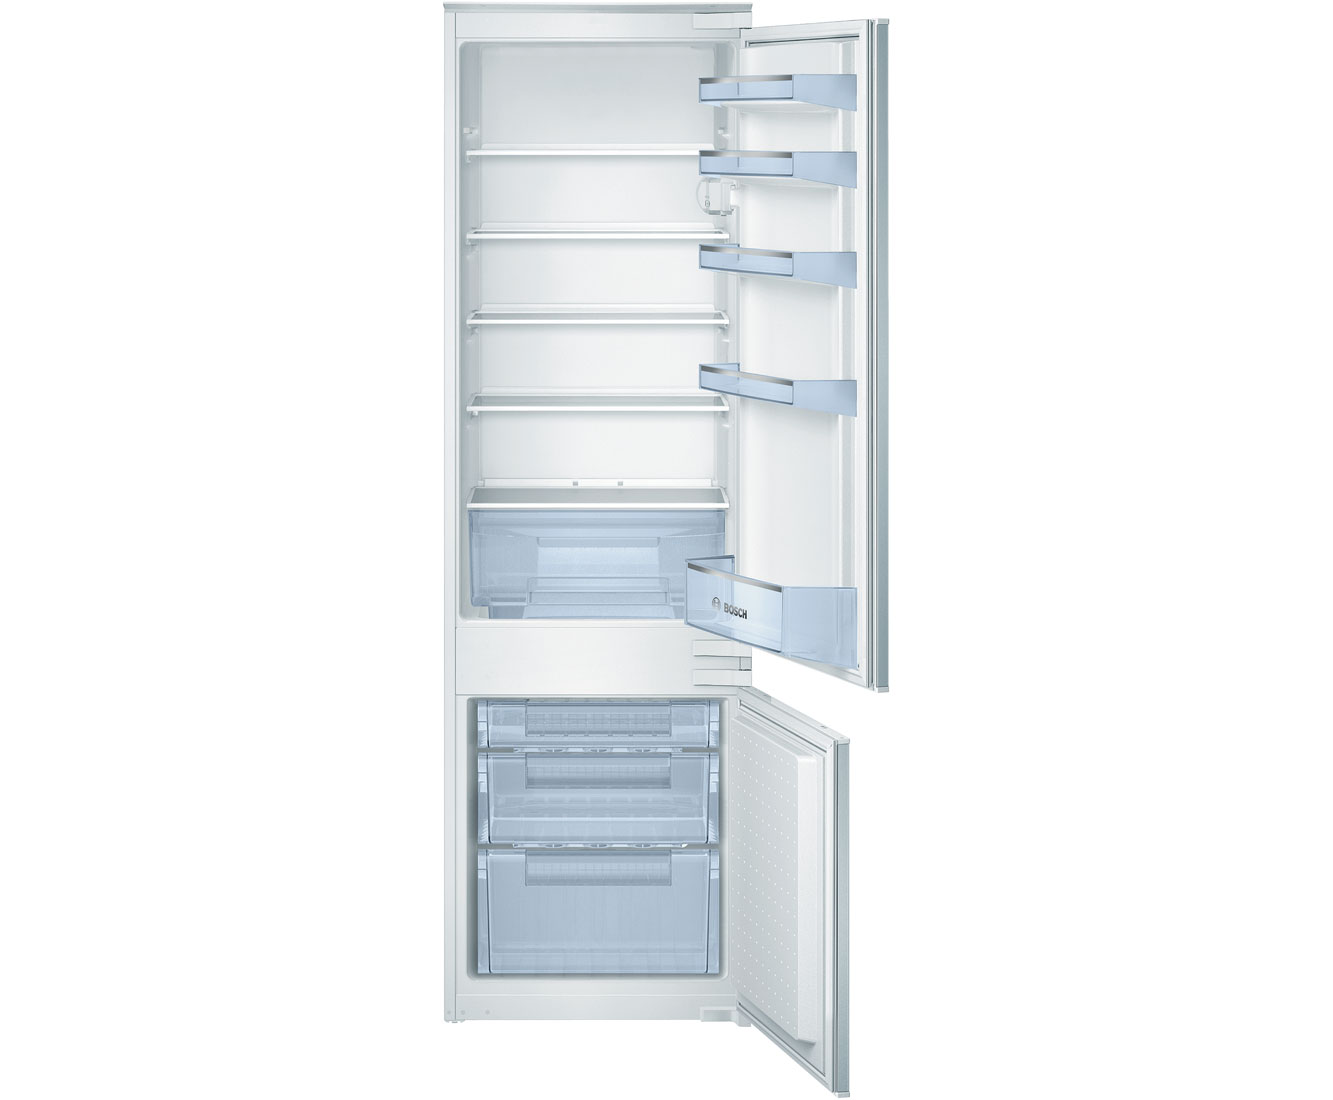 Bosch Serie 4 KIV38X22GB Integrated Fridge Freezer in White